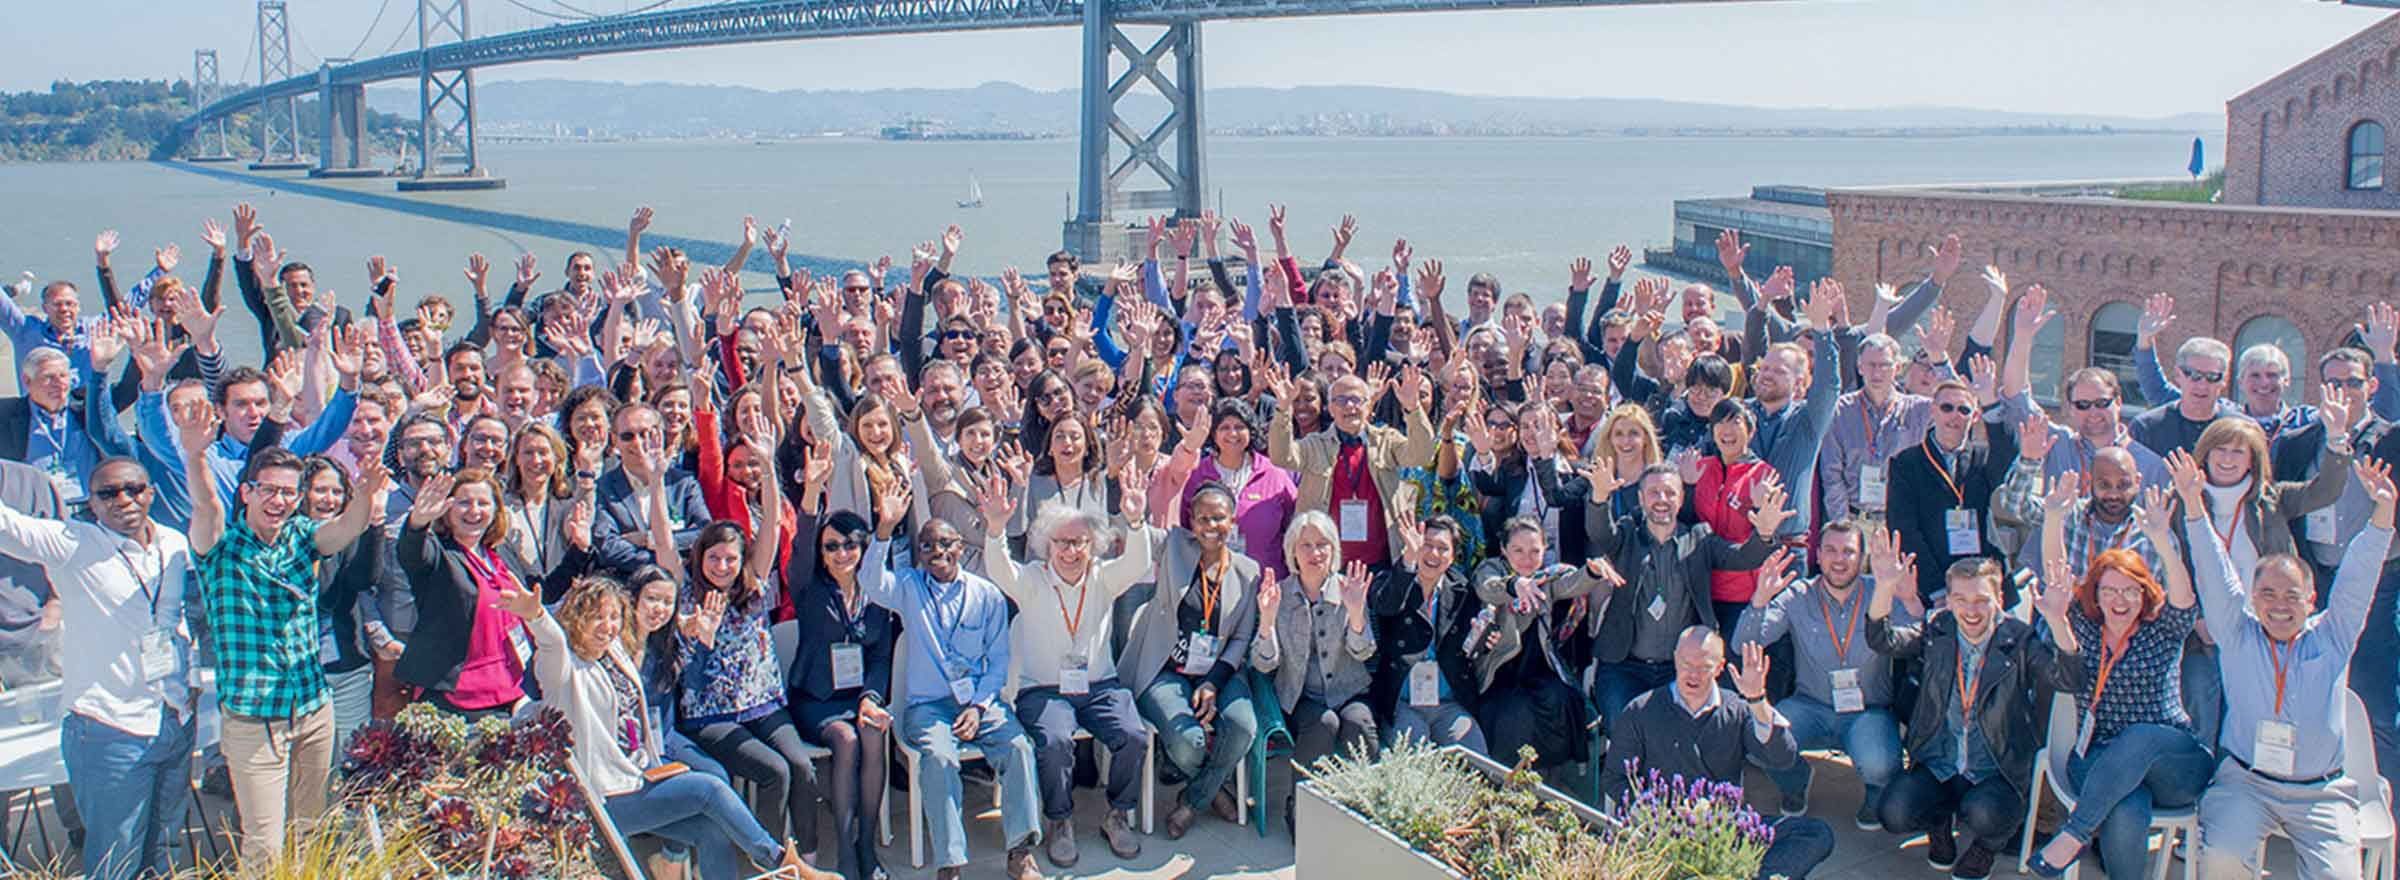 techsoup staff celebrating together in front of the bay bridge, representing the opportunity to invest in techsoup to build a more equitable planet